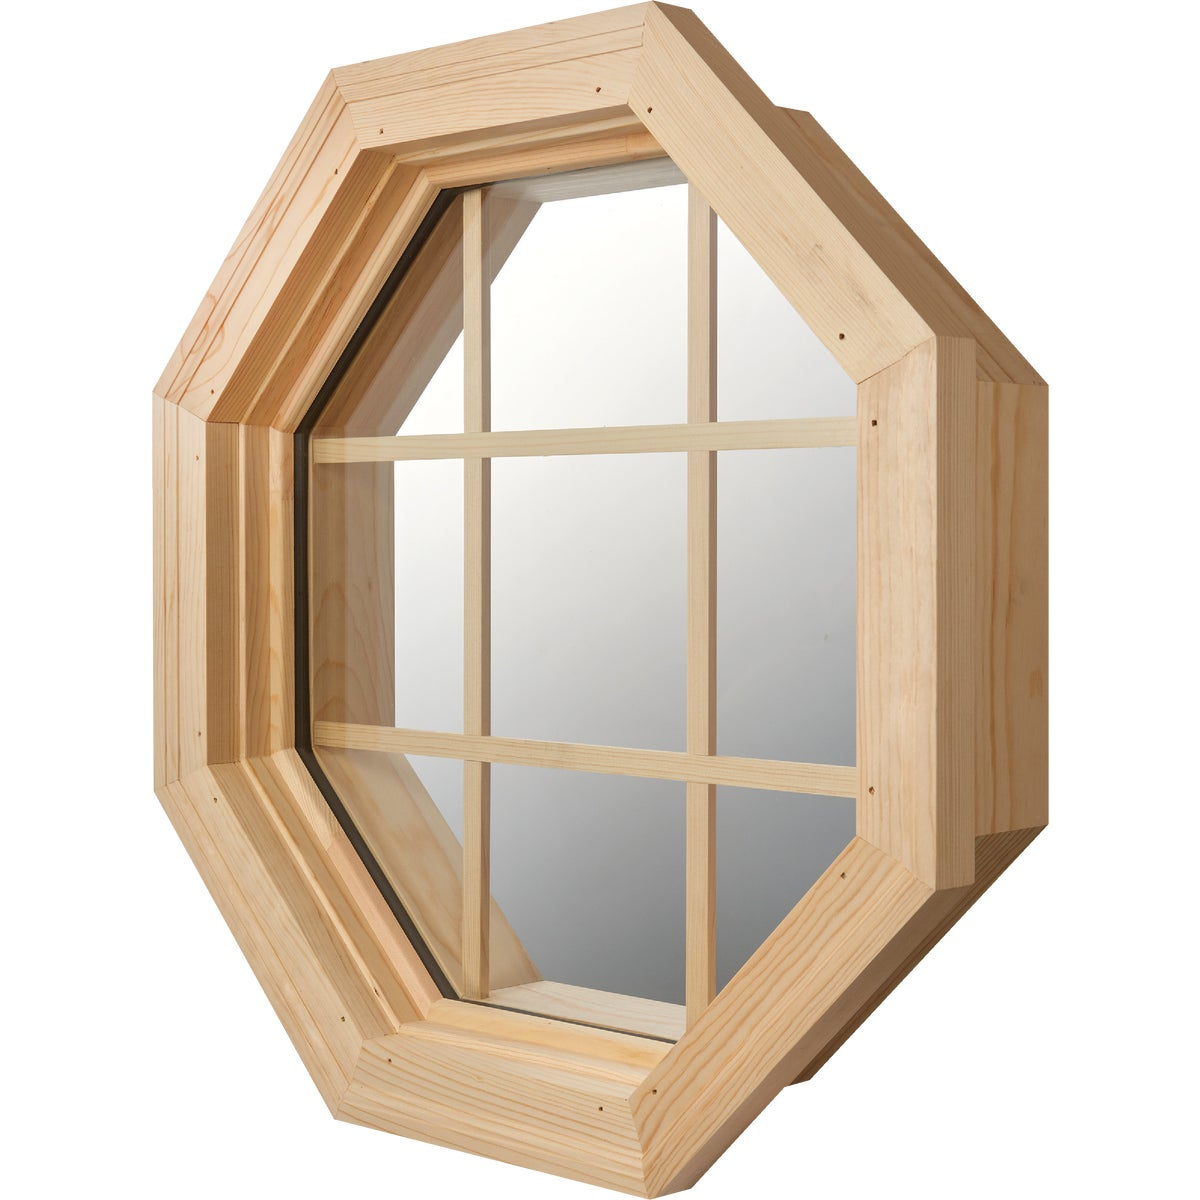 WD OCTAGON INSLAT WINDOW - 11115 by Century Speci Window